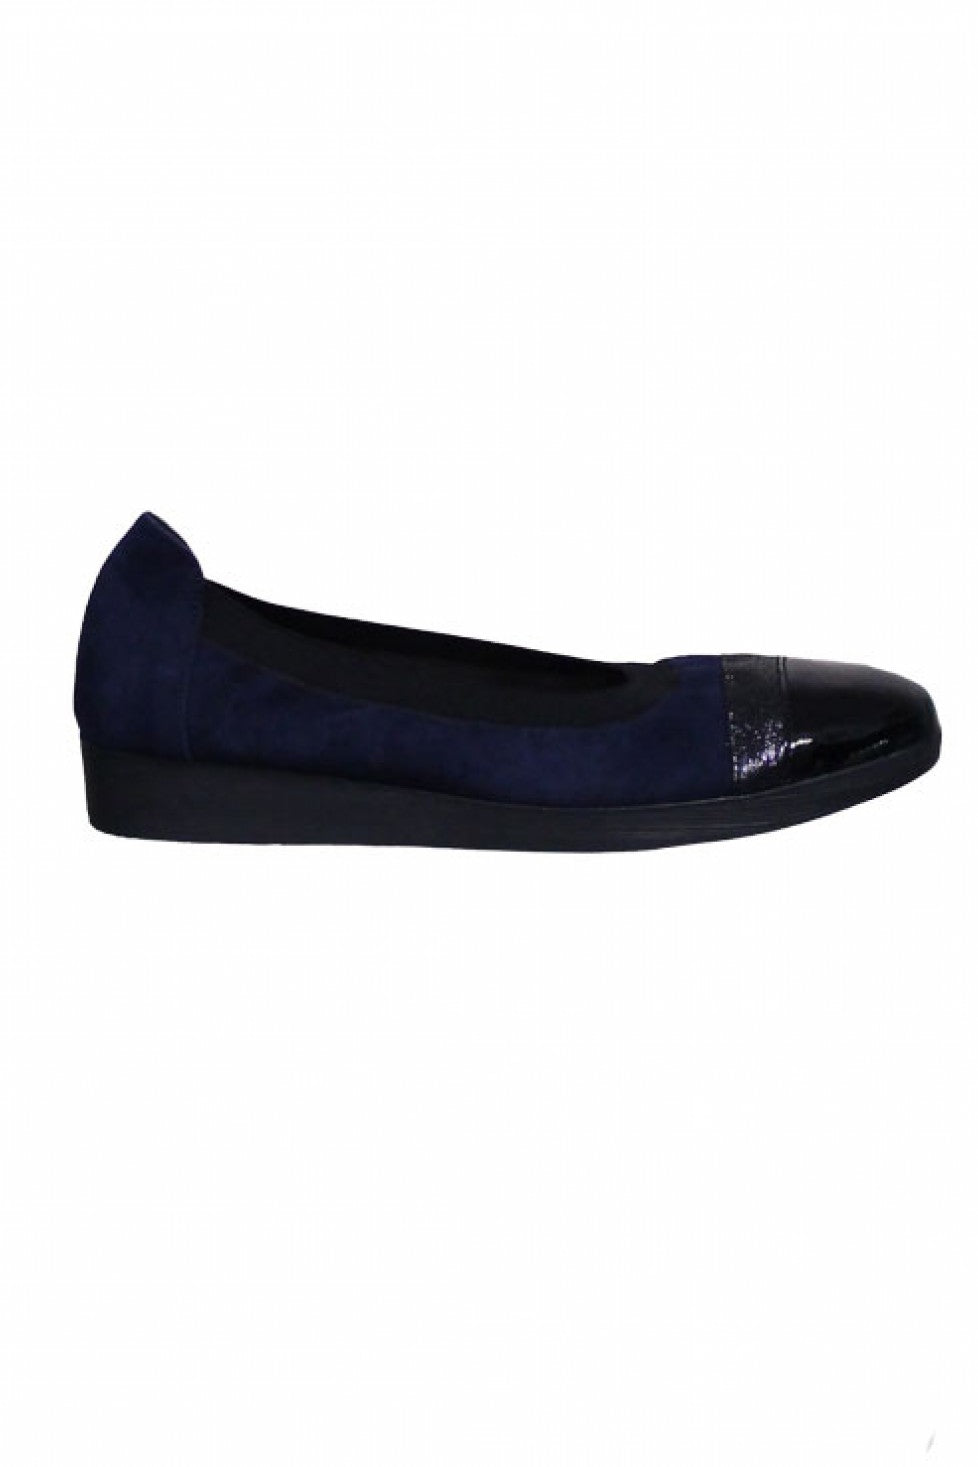 Blue Black Comfortable Hirica Shoe Style and Grace